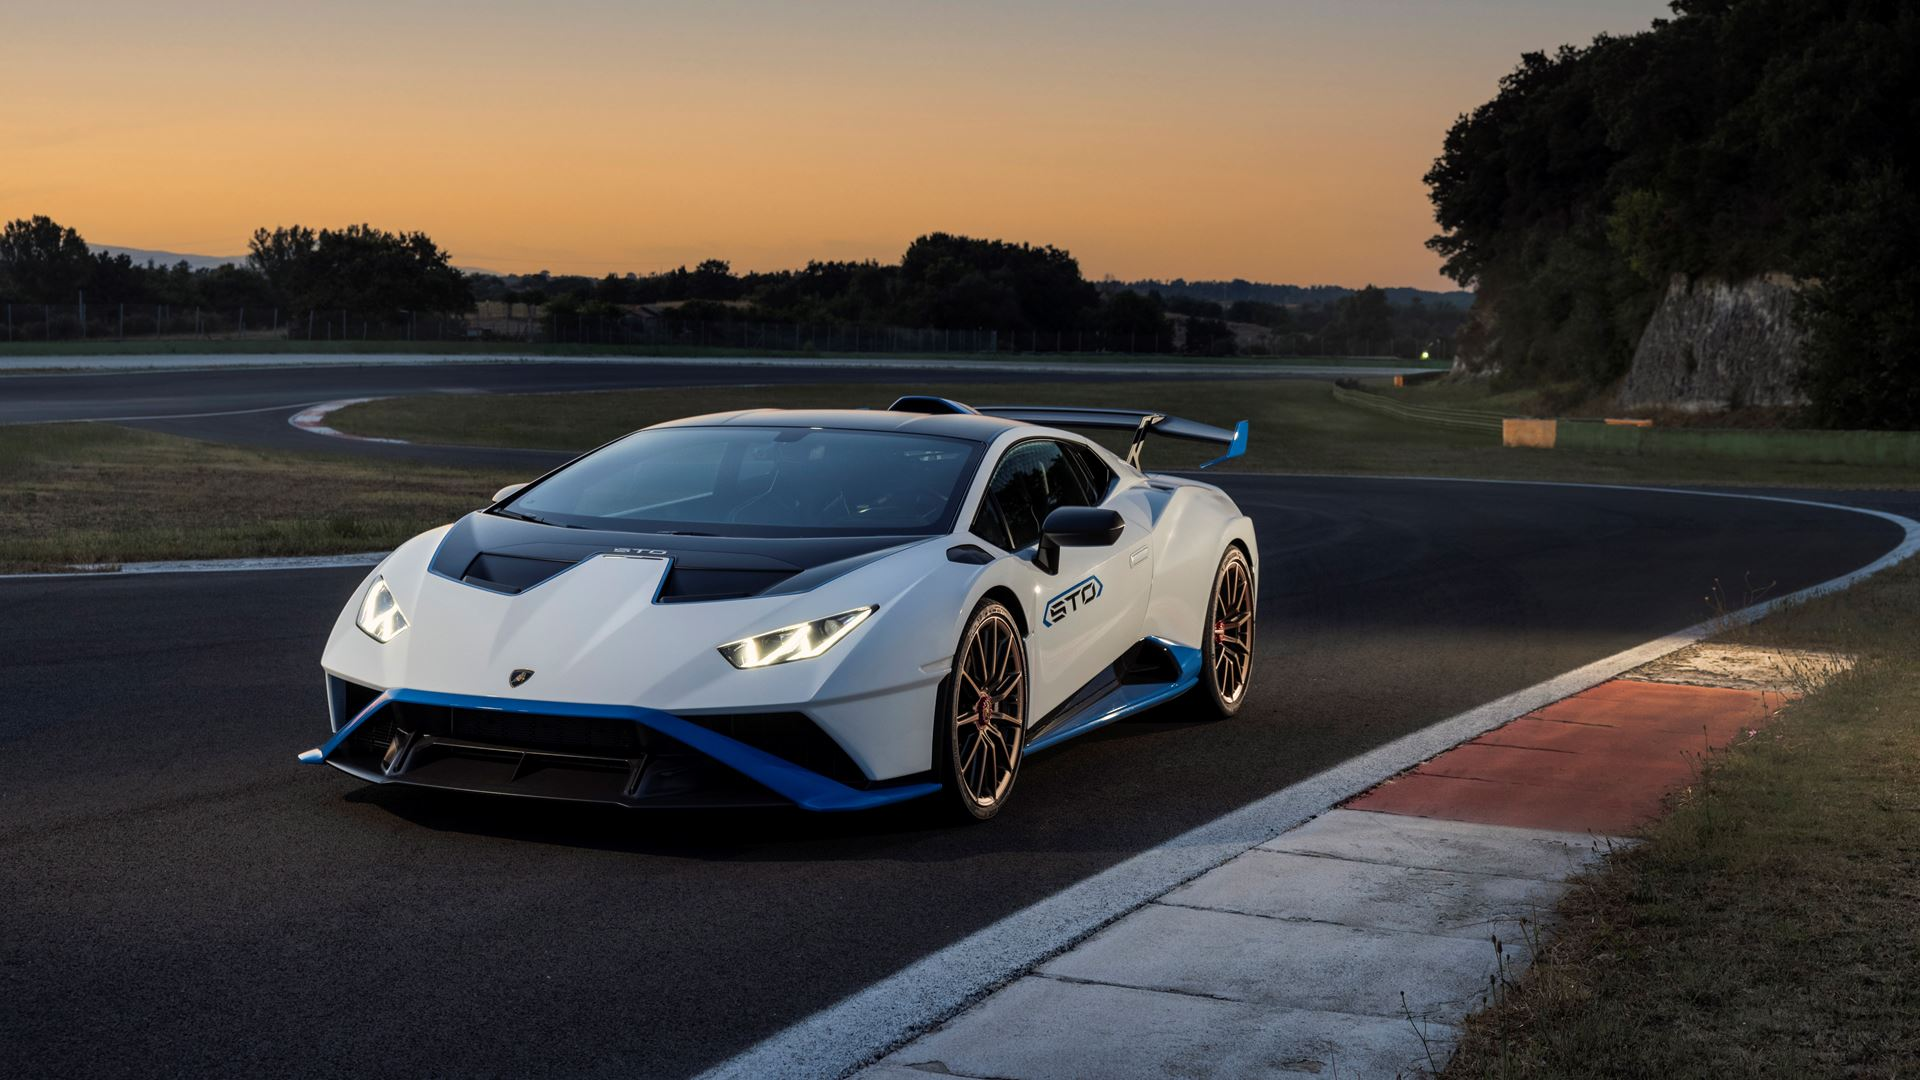 Lamborghini Huracán STO finally unleashed First test-drives in Rome and at the Autodromo Piero Taruffi in Vallelunga - Image 4